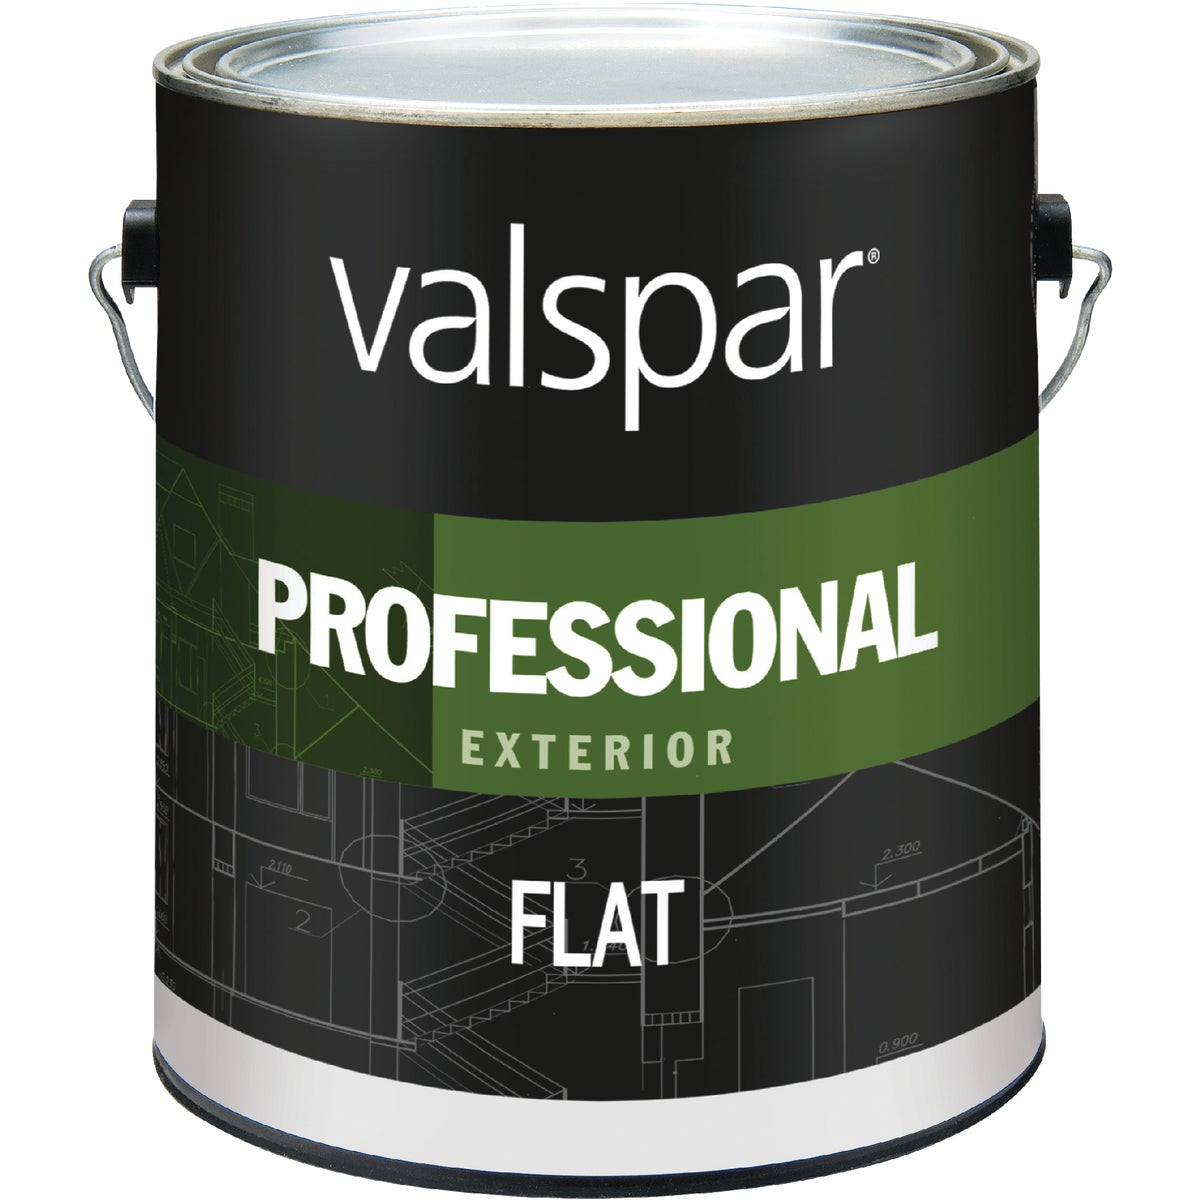 EXT FLAT WHITE PAINT - 045.0012600.007 by Valspar Corp